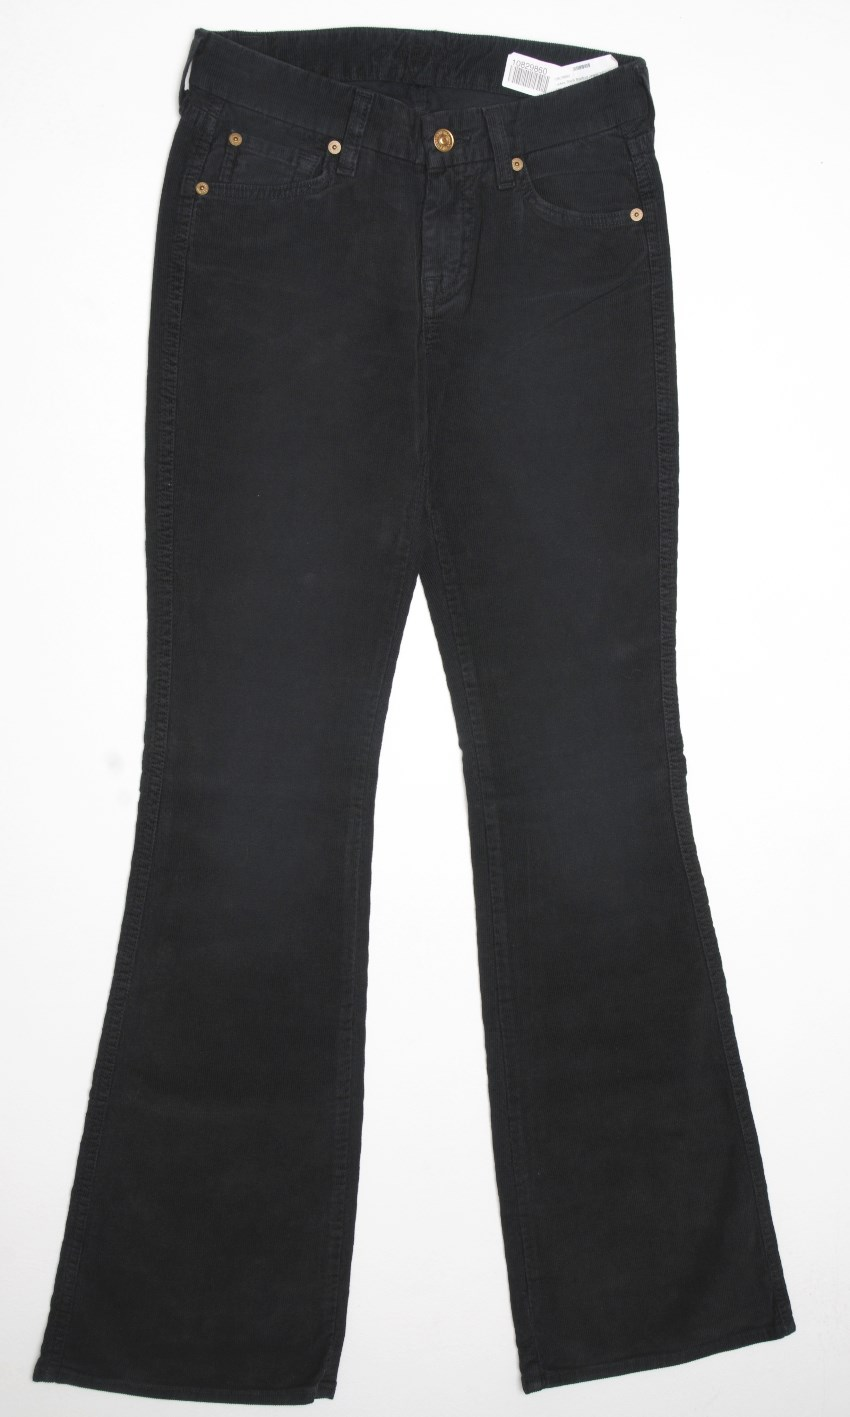 7 for all mankind corduroy jeans